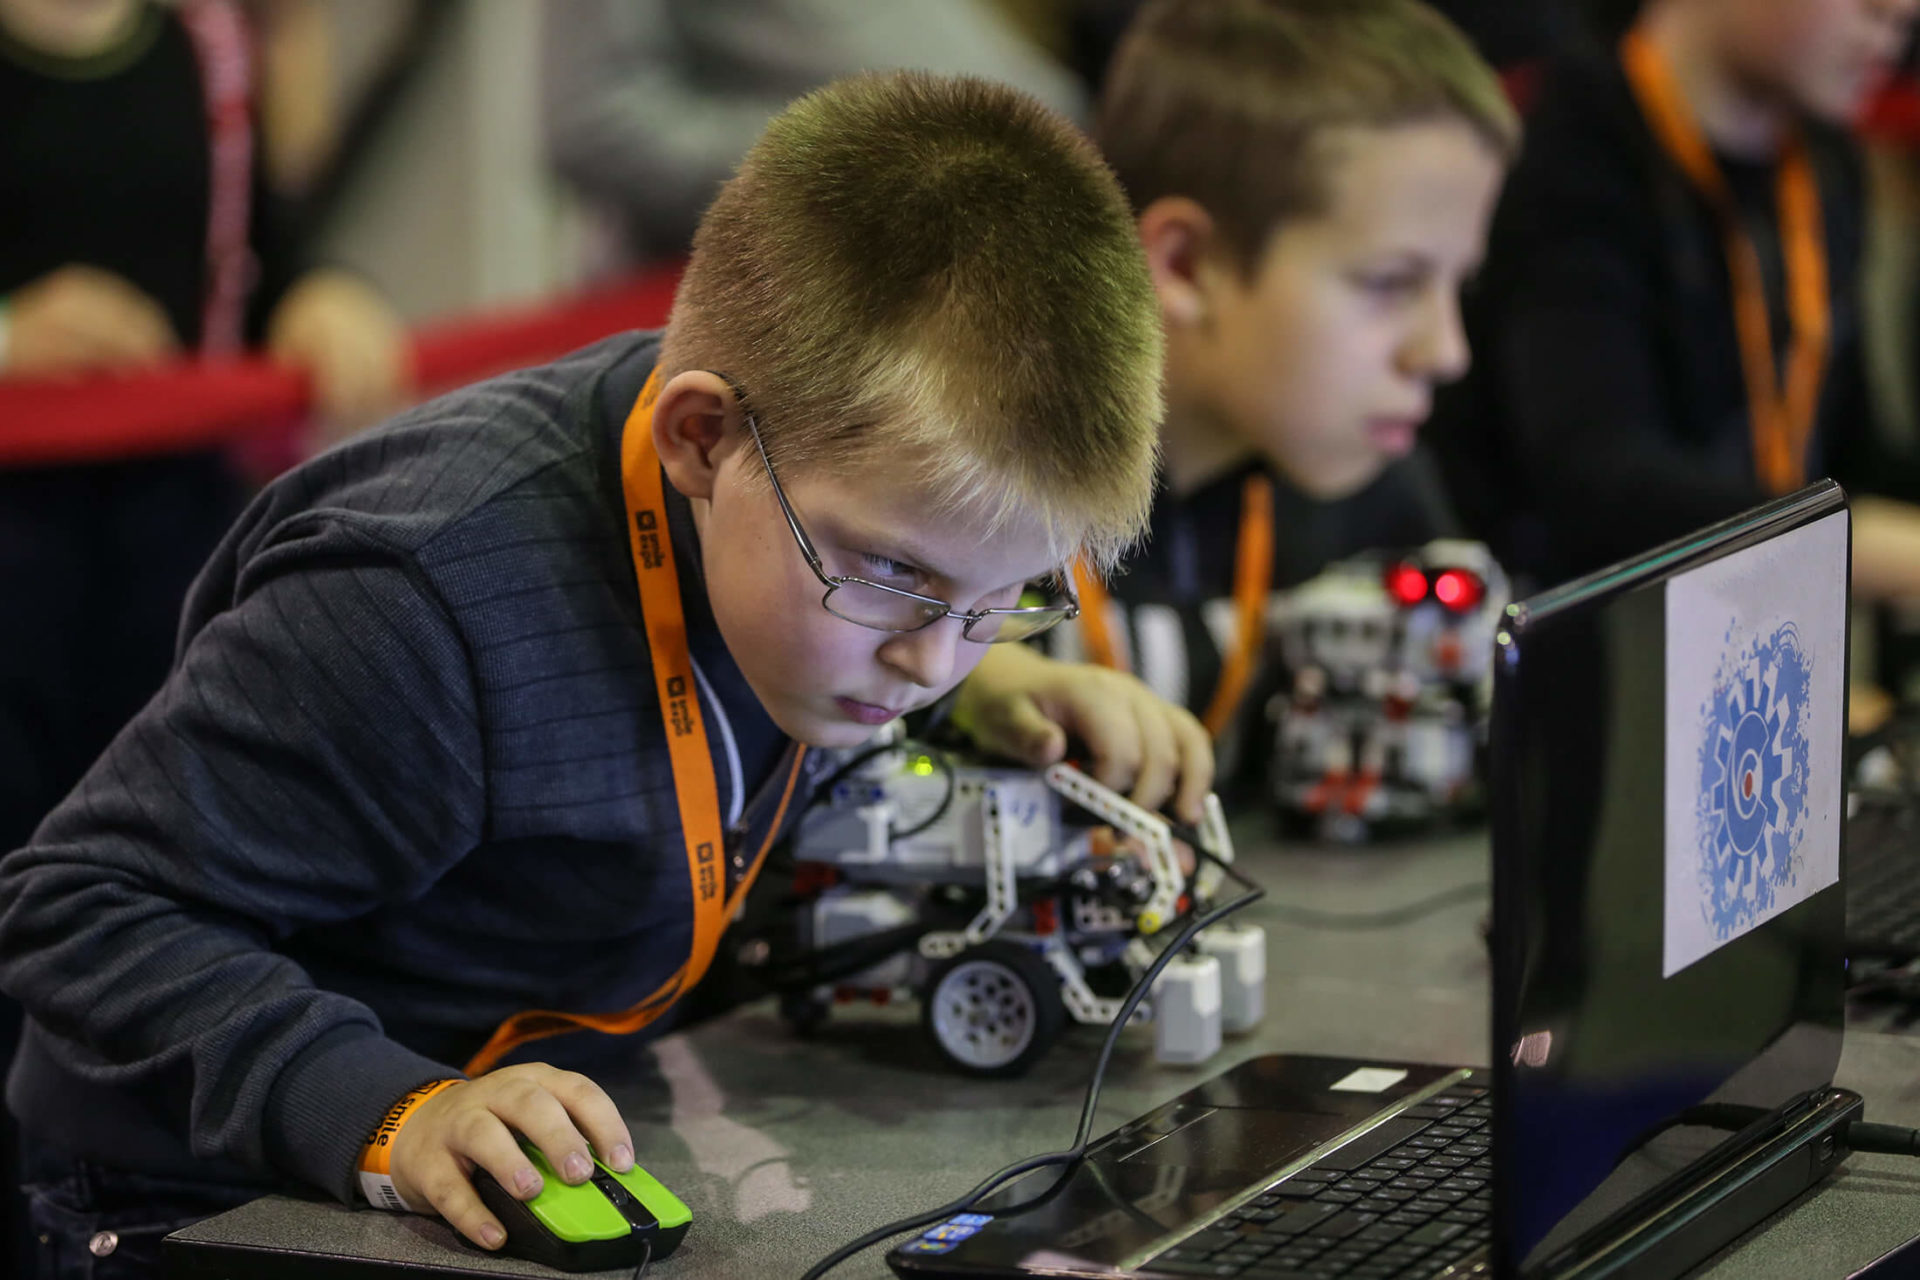 Experts told how to introduce artificial intelligence to schools